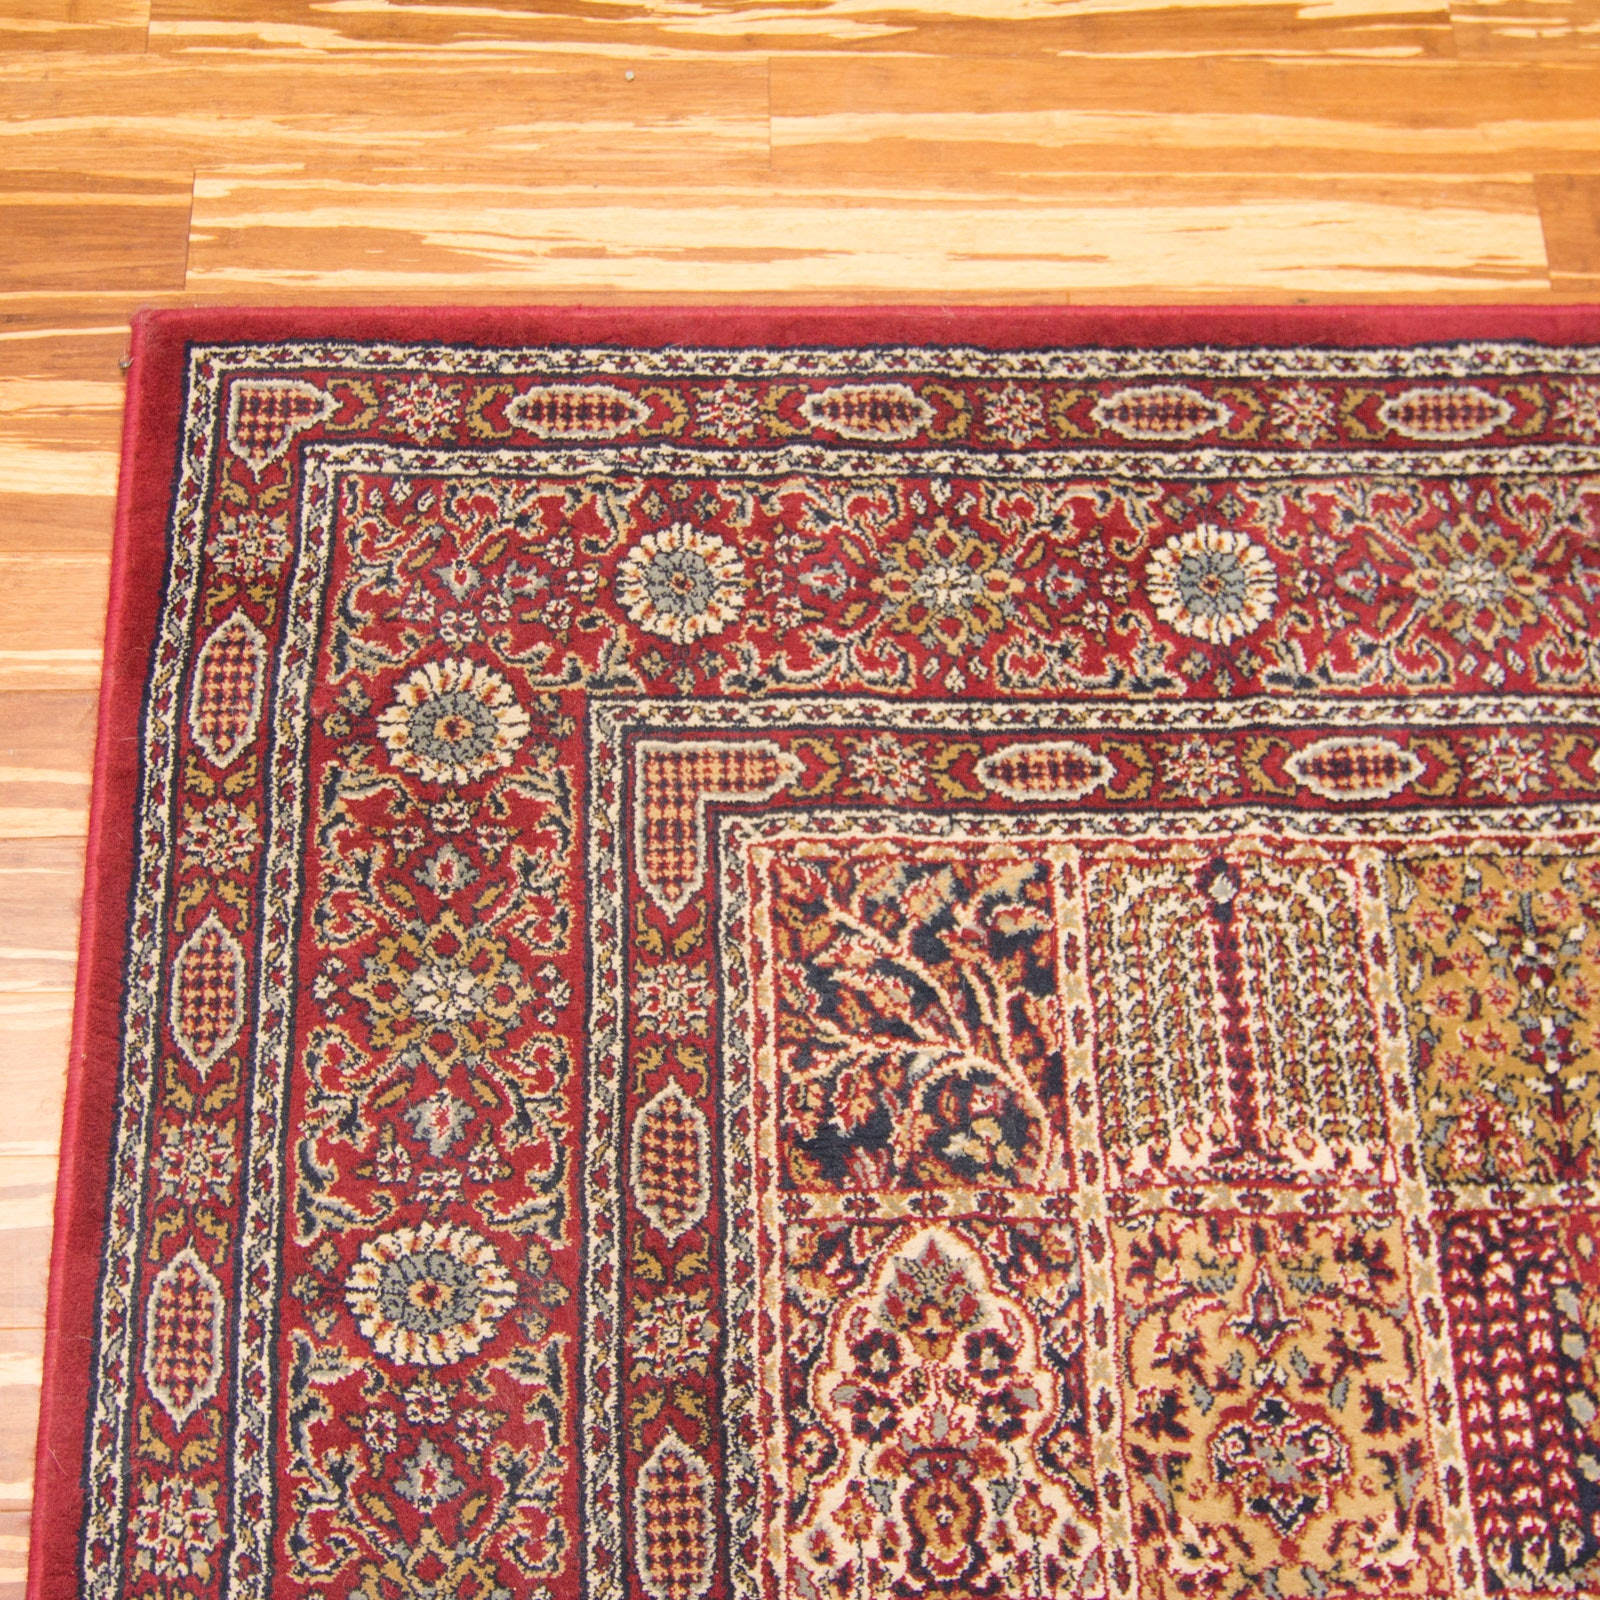 Egyptian Made Quot Valby Ruta Quot Synthetic Fiber Area Rug By